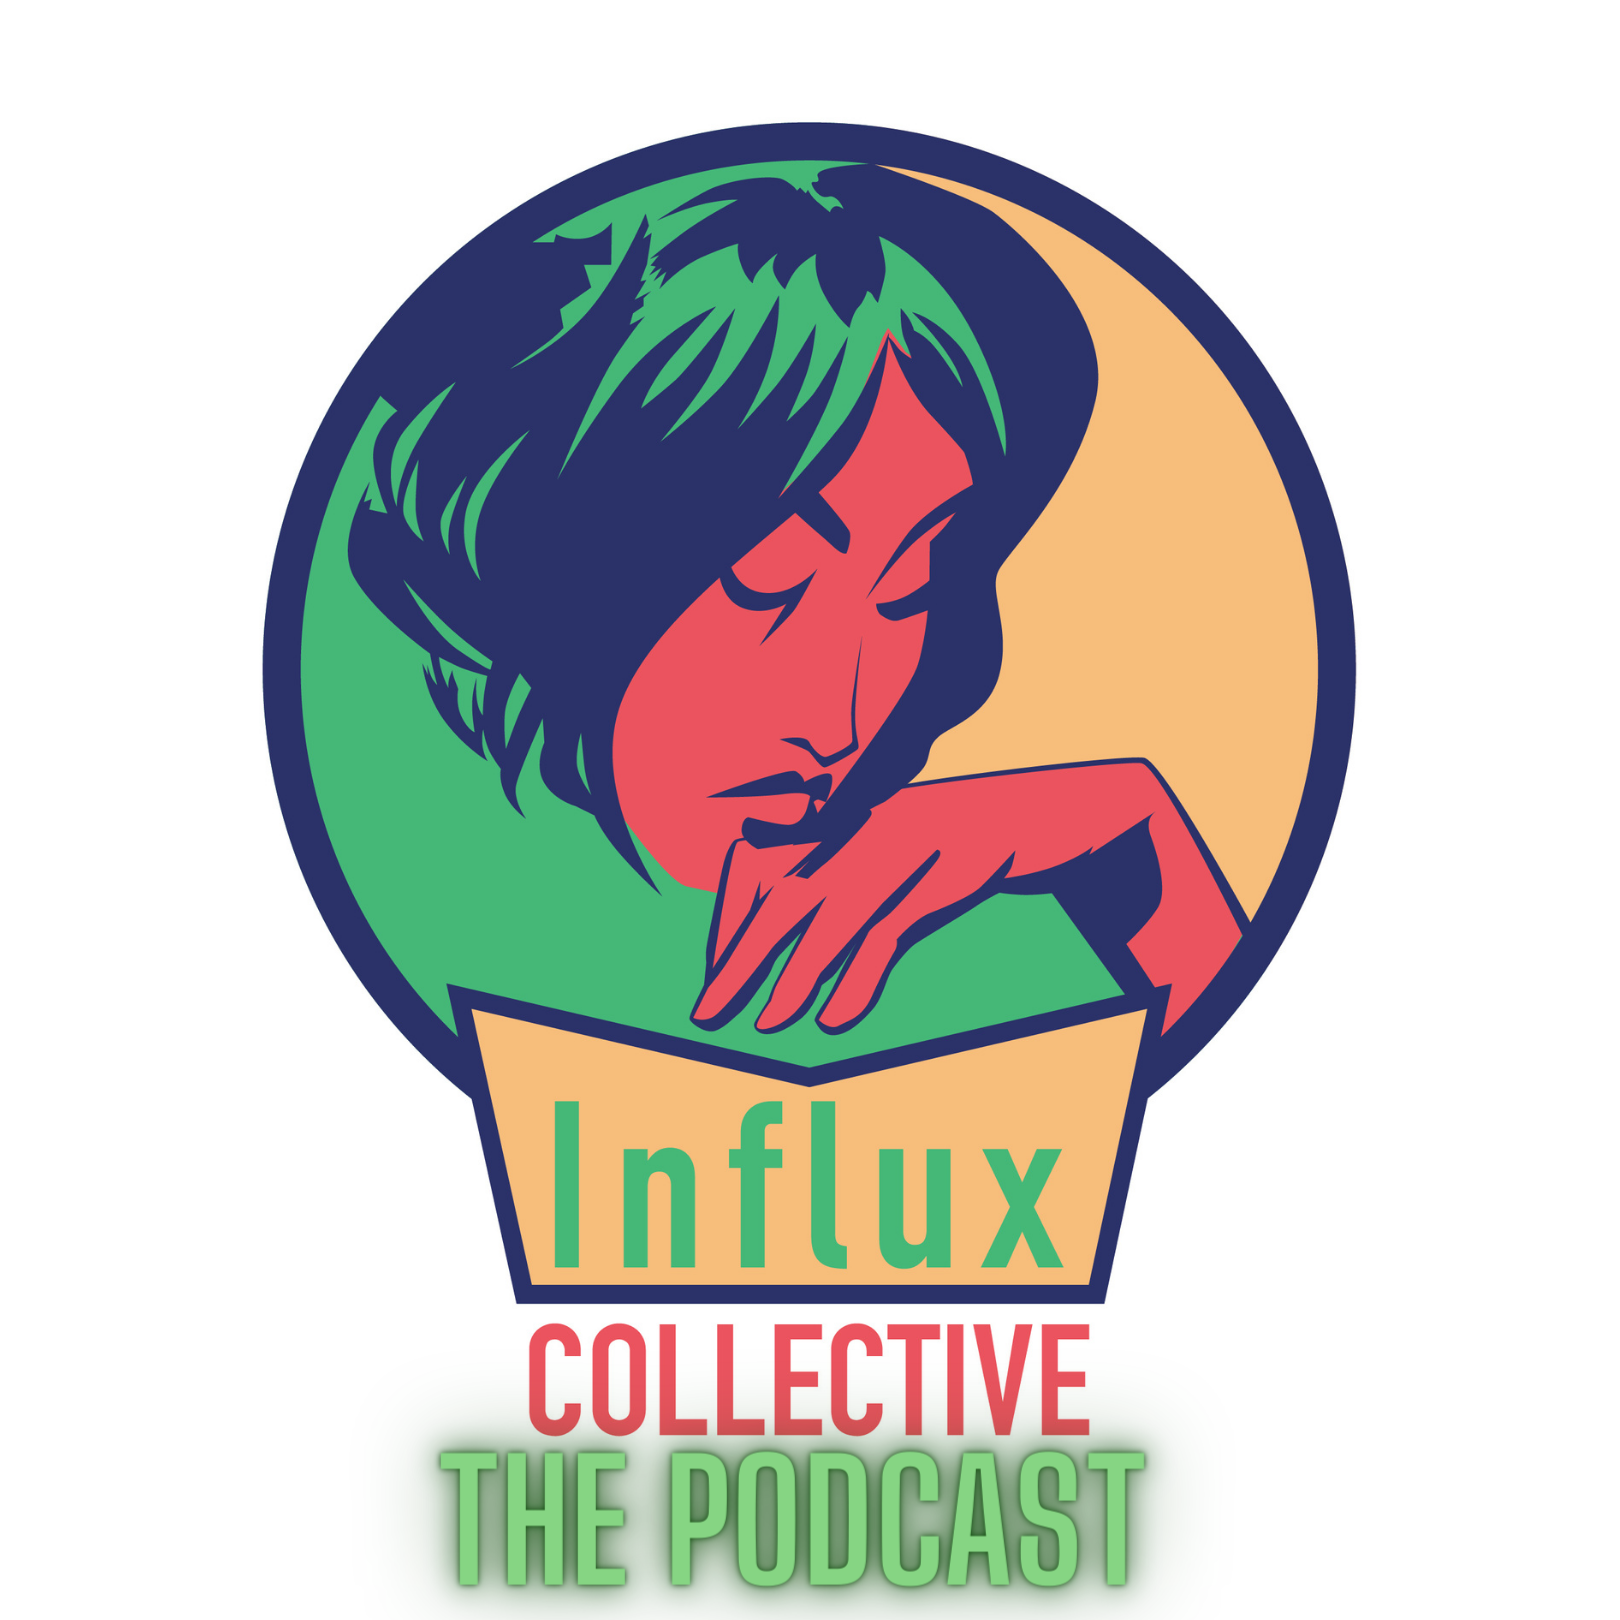 Influx Collectiv: The Podcast